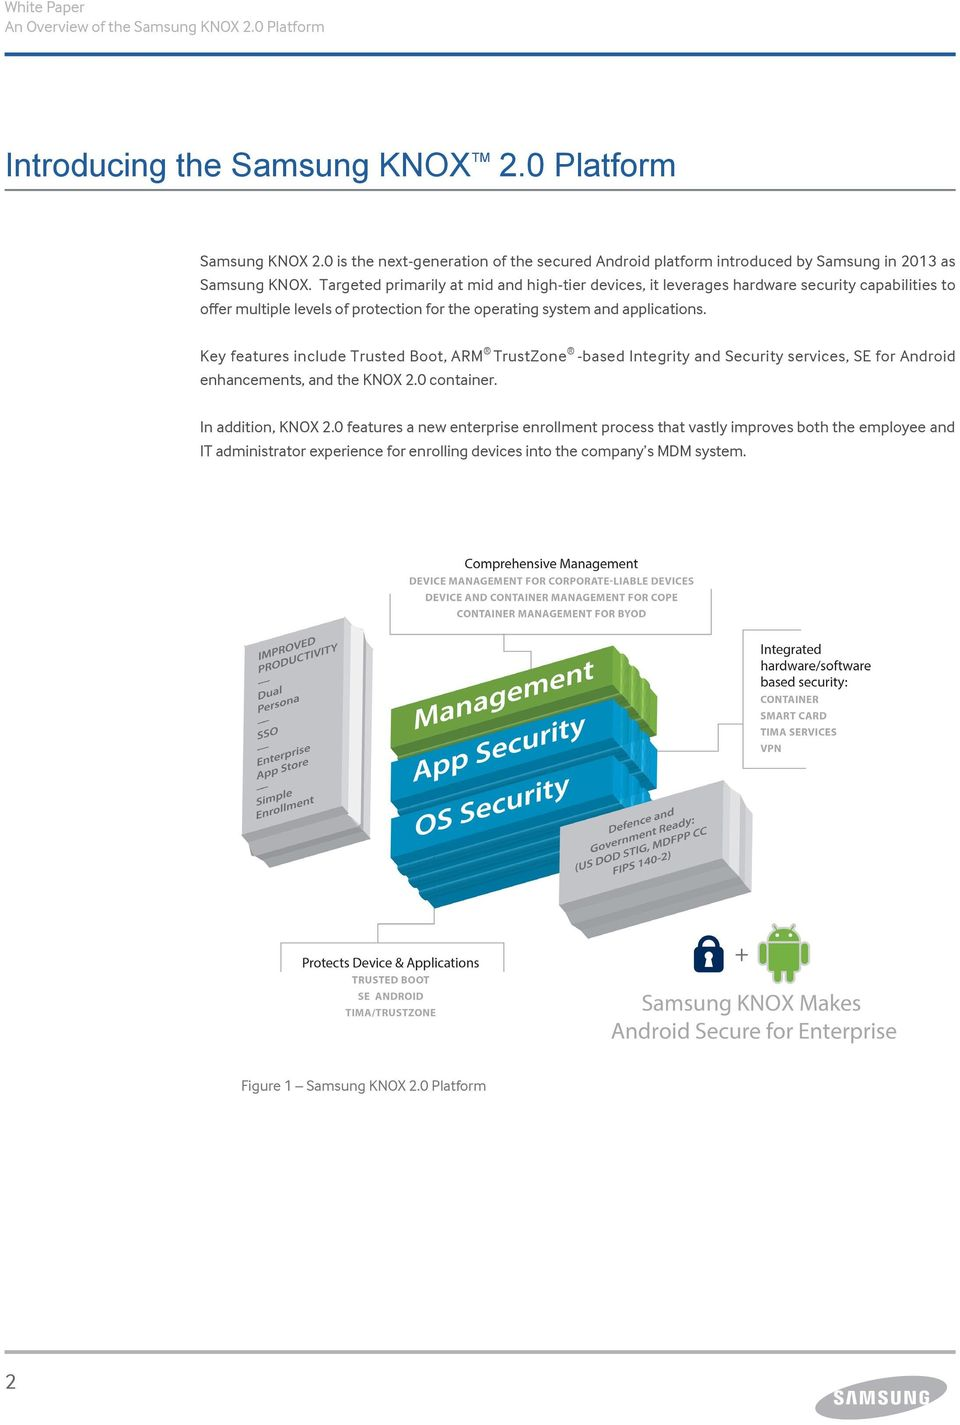 White Paper: An Overview of the Samsung KNOX TM 2 0 Platform